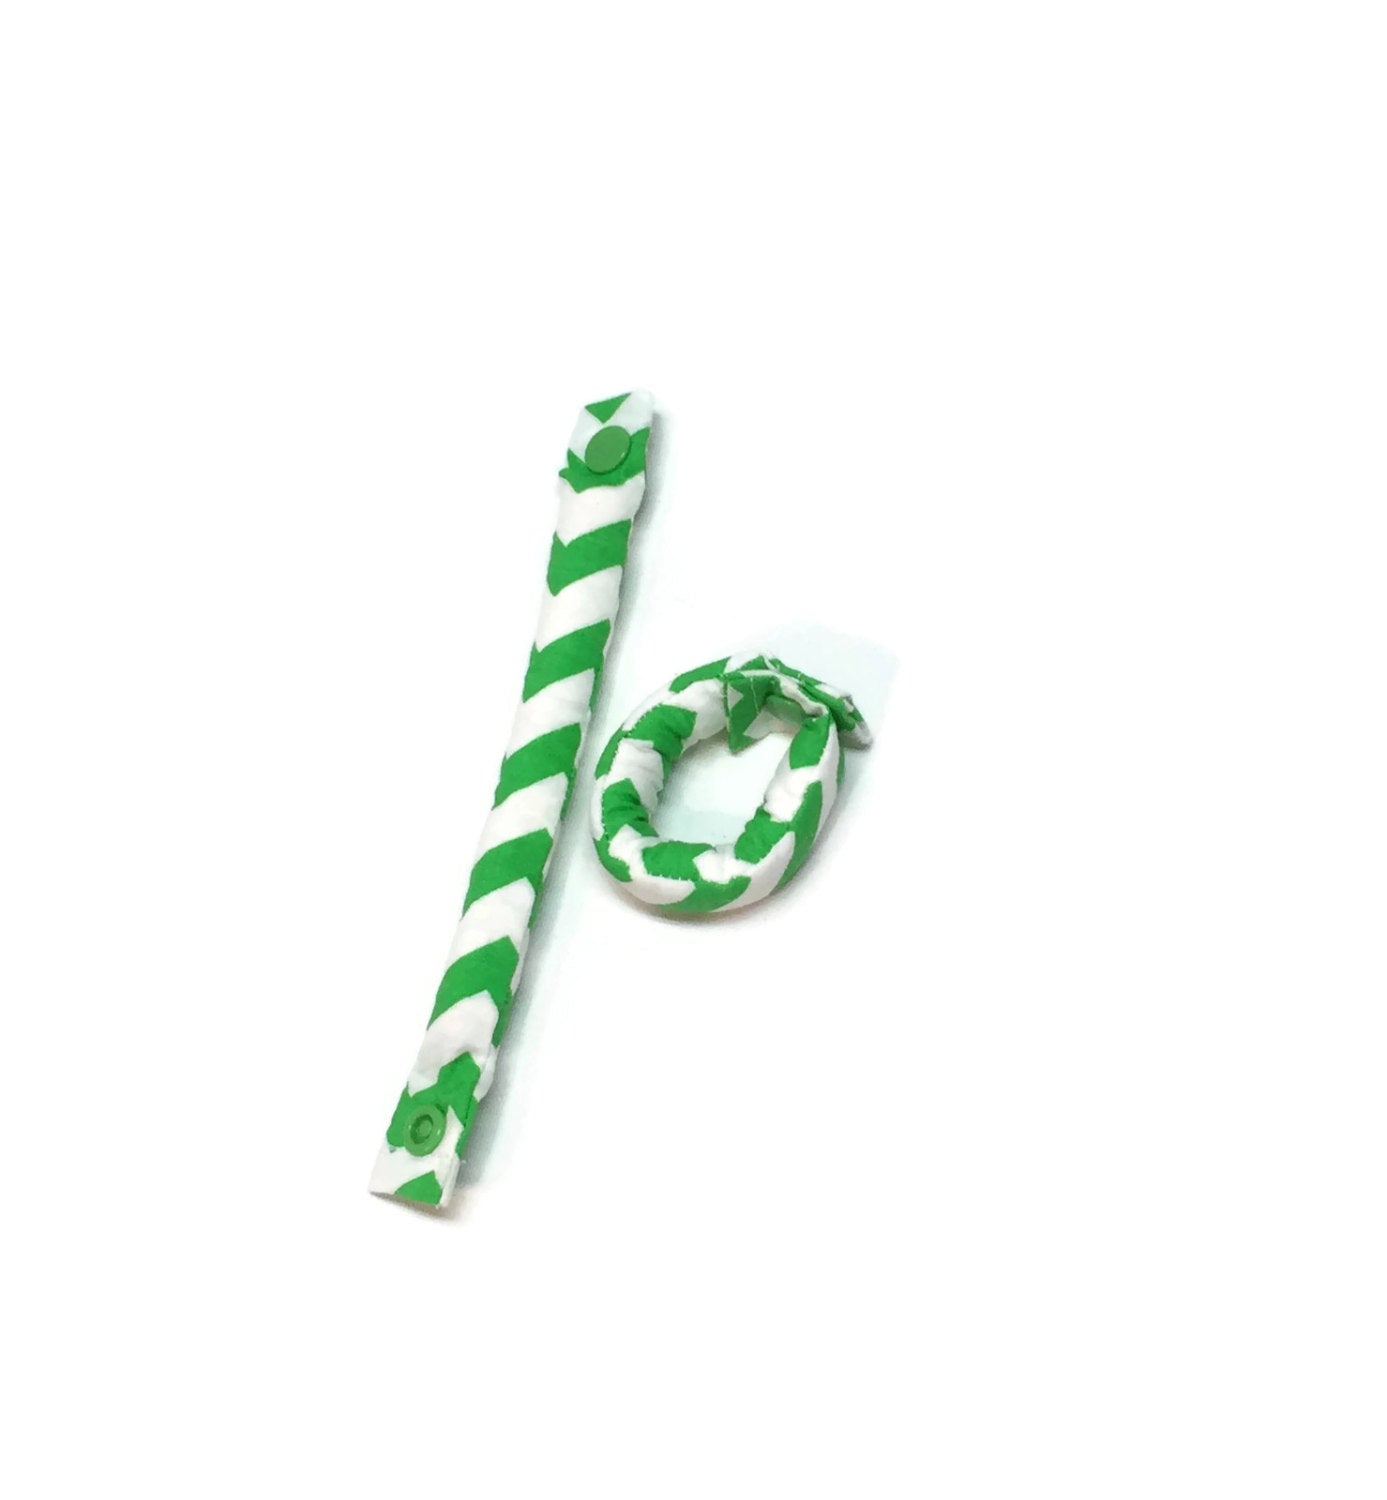 Green and White Chevron Hair Rollers- Hair Curlers - Hair Accessories - My Easy Curls